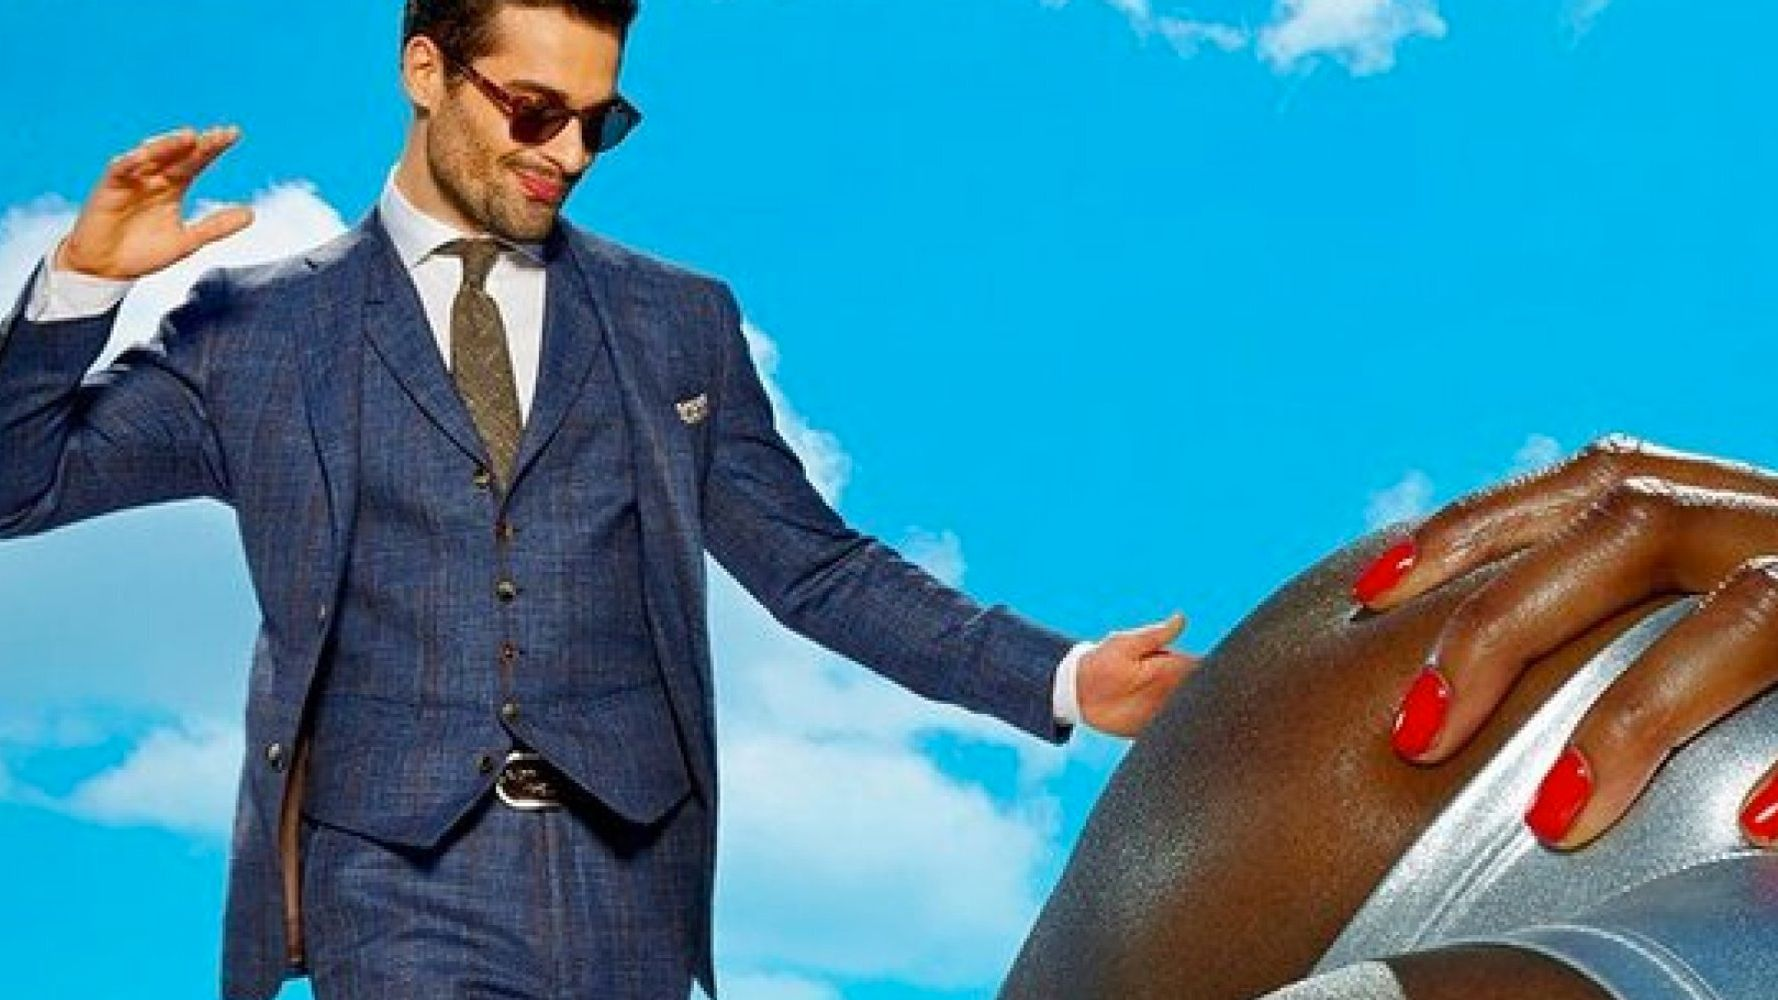 Menswear Adverts Featuring Half-Naked Women Are Actually